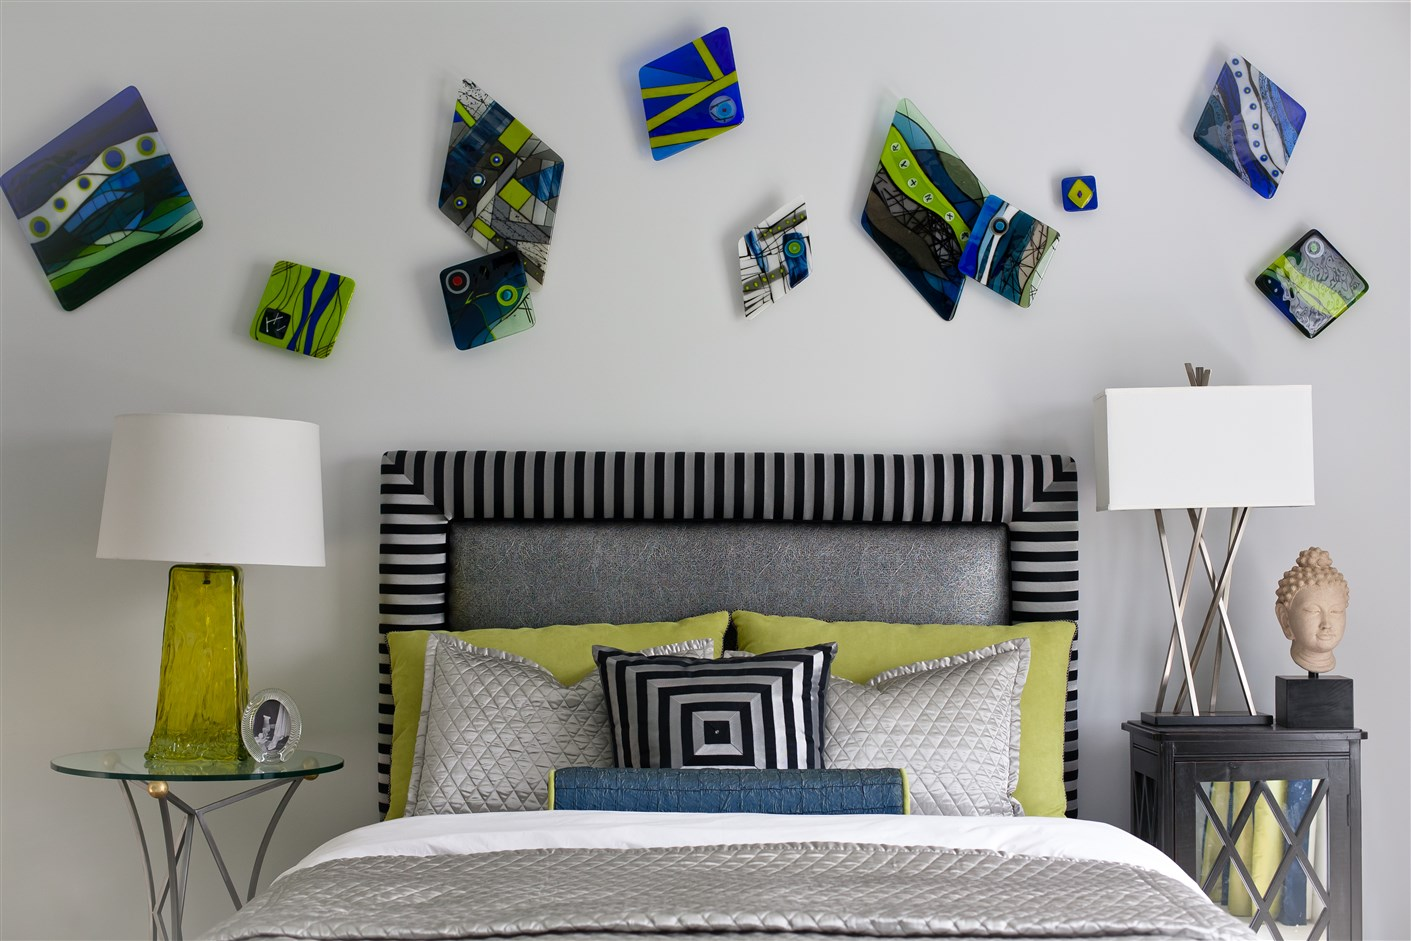 Bed with black and white stripes headboard